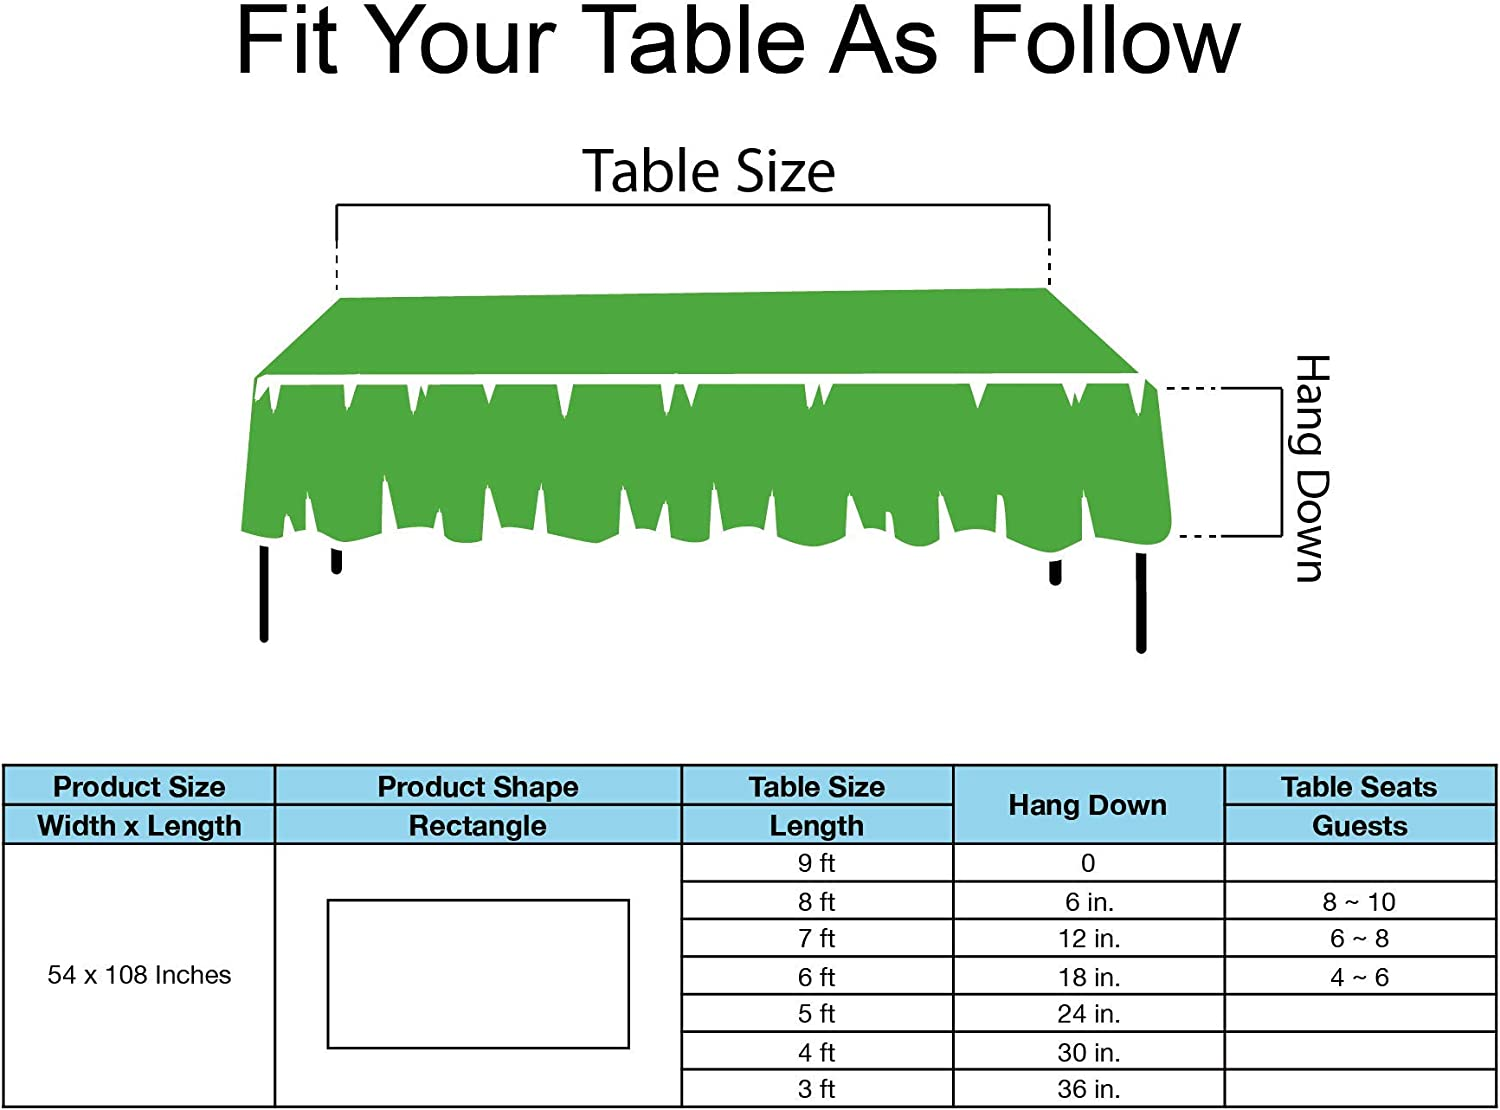 Brown Plastic Tablecloths Disposable Table Covers 6 Pack Premium 54 x 108 Inches Table Cloth for Rectangle Tables up to 8 Feet and for Picnic Birthdays Weddings any Events Occasions PEVA Material